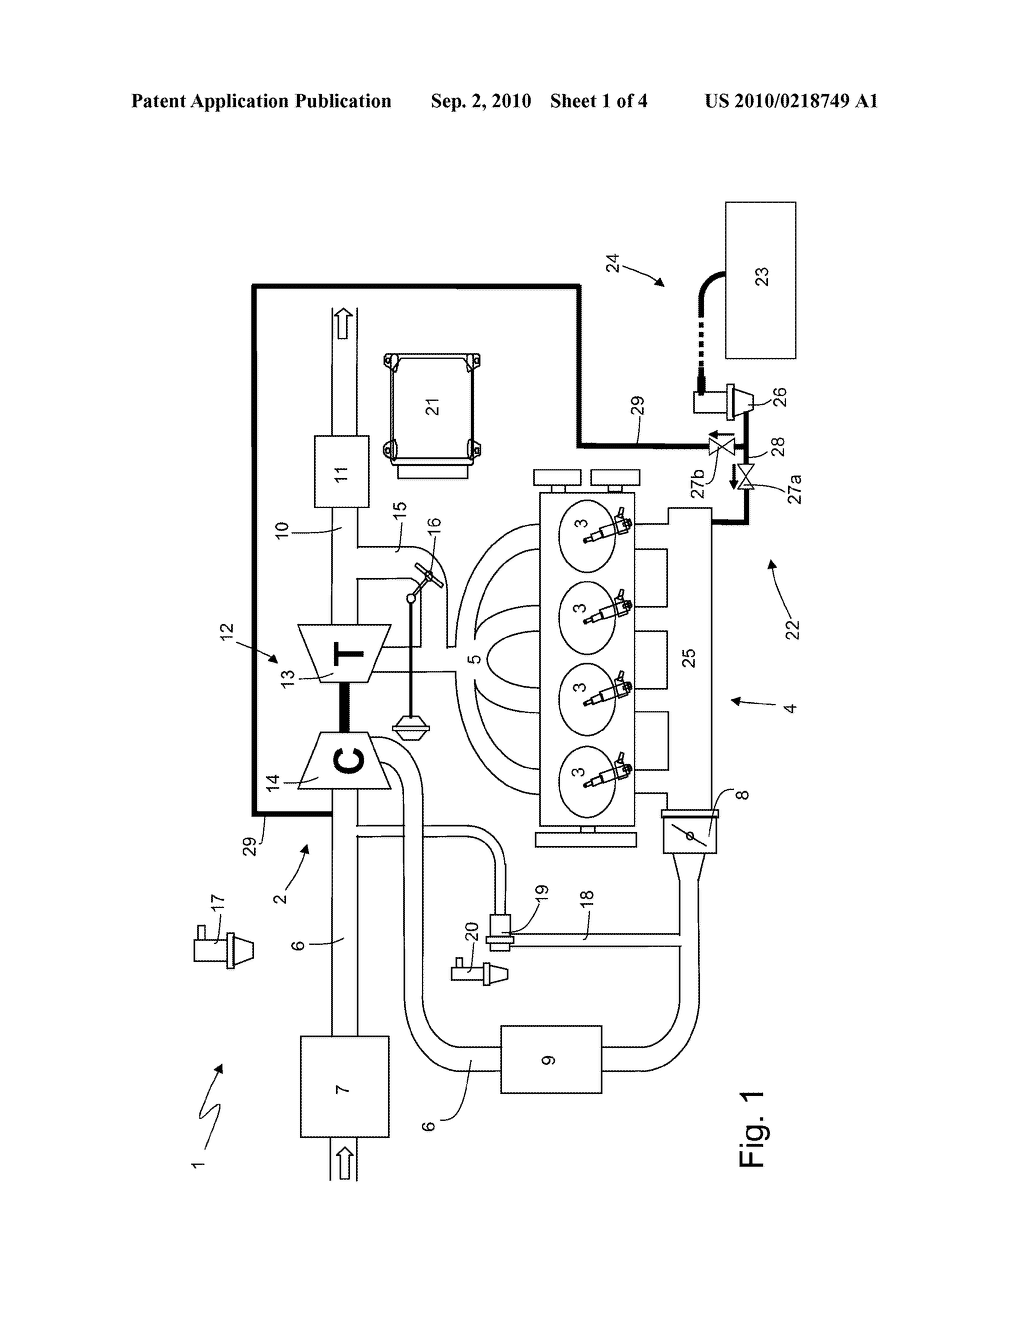 Intake Manifold With Integrated Canister Circuit For A Supercharged  Internal Combustion Engine - diagram, schematic, and image 02